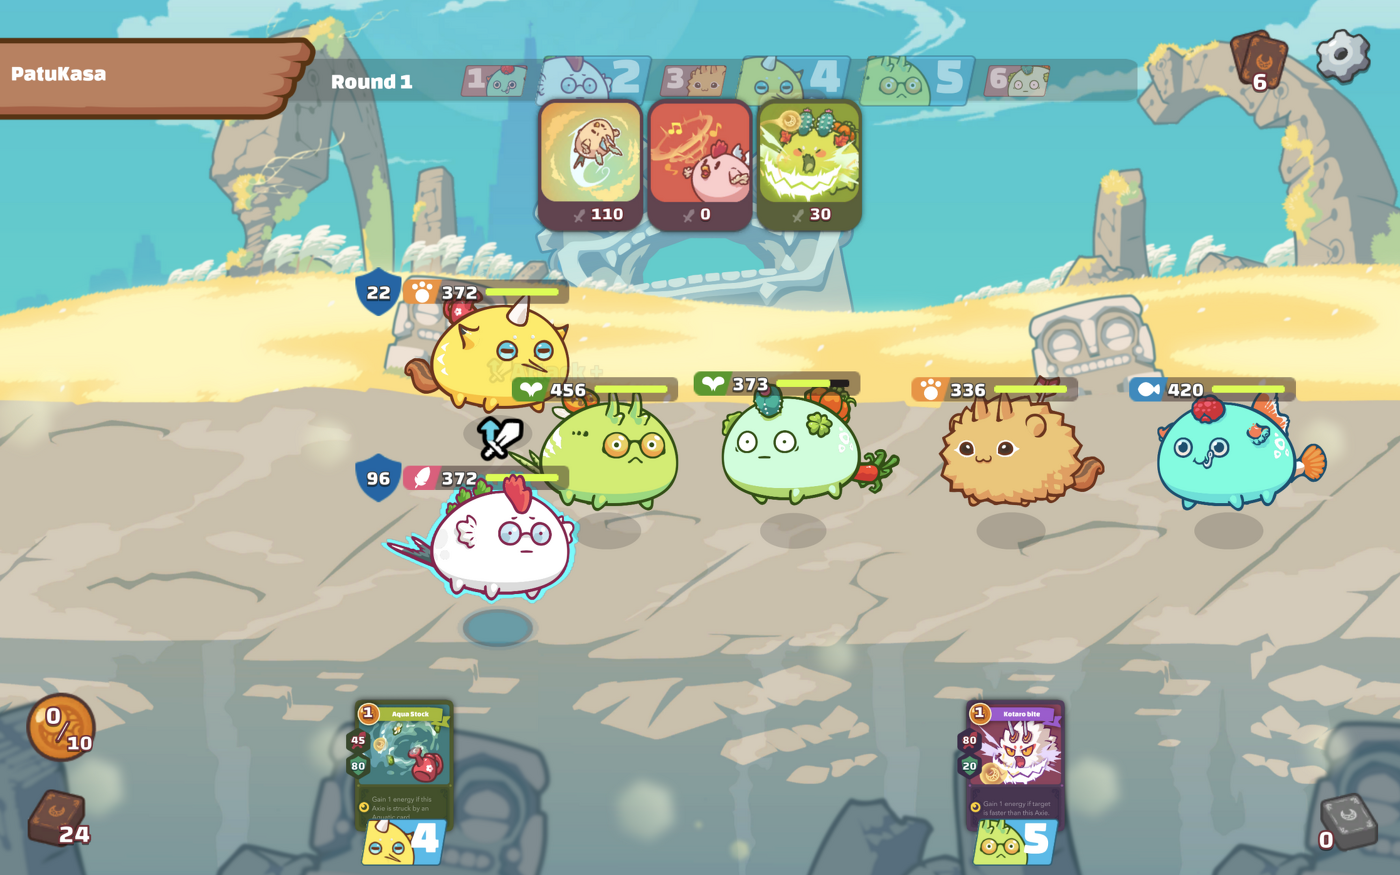 Axie Infinity sees you collect cute monsters to battle with. Image: Axie Infinity